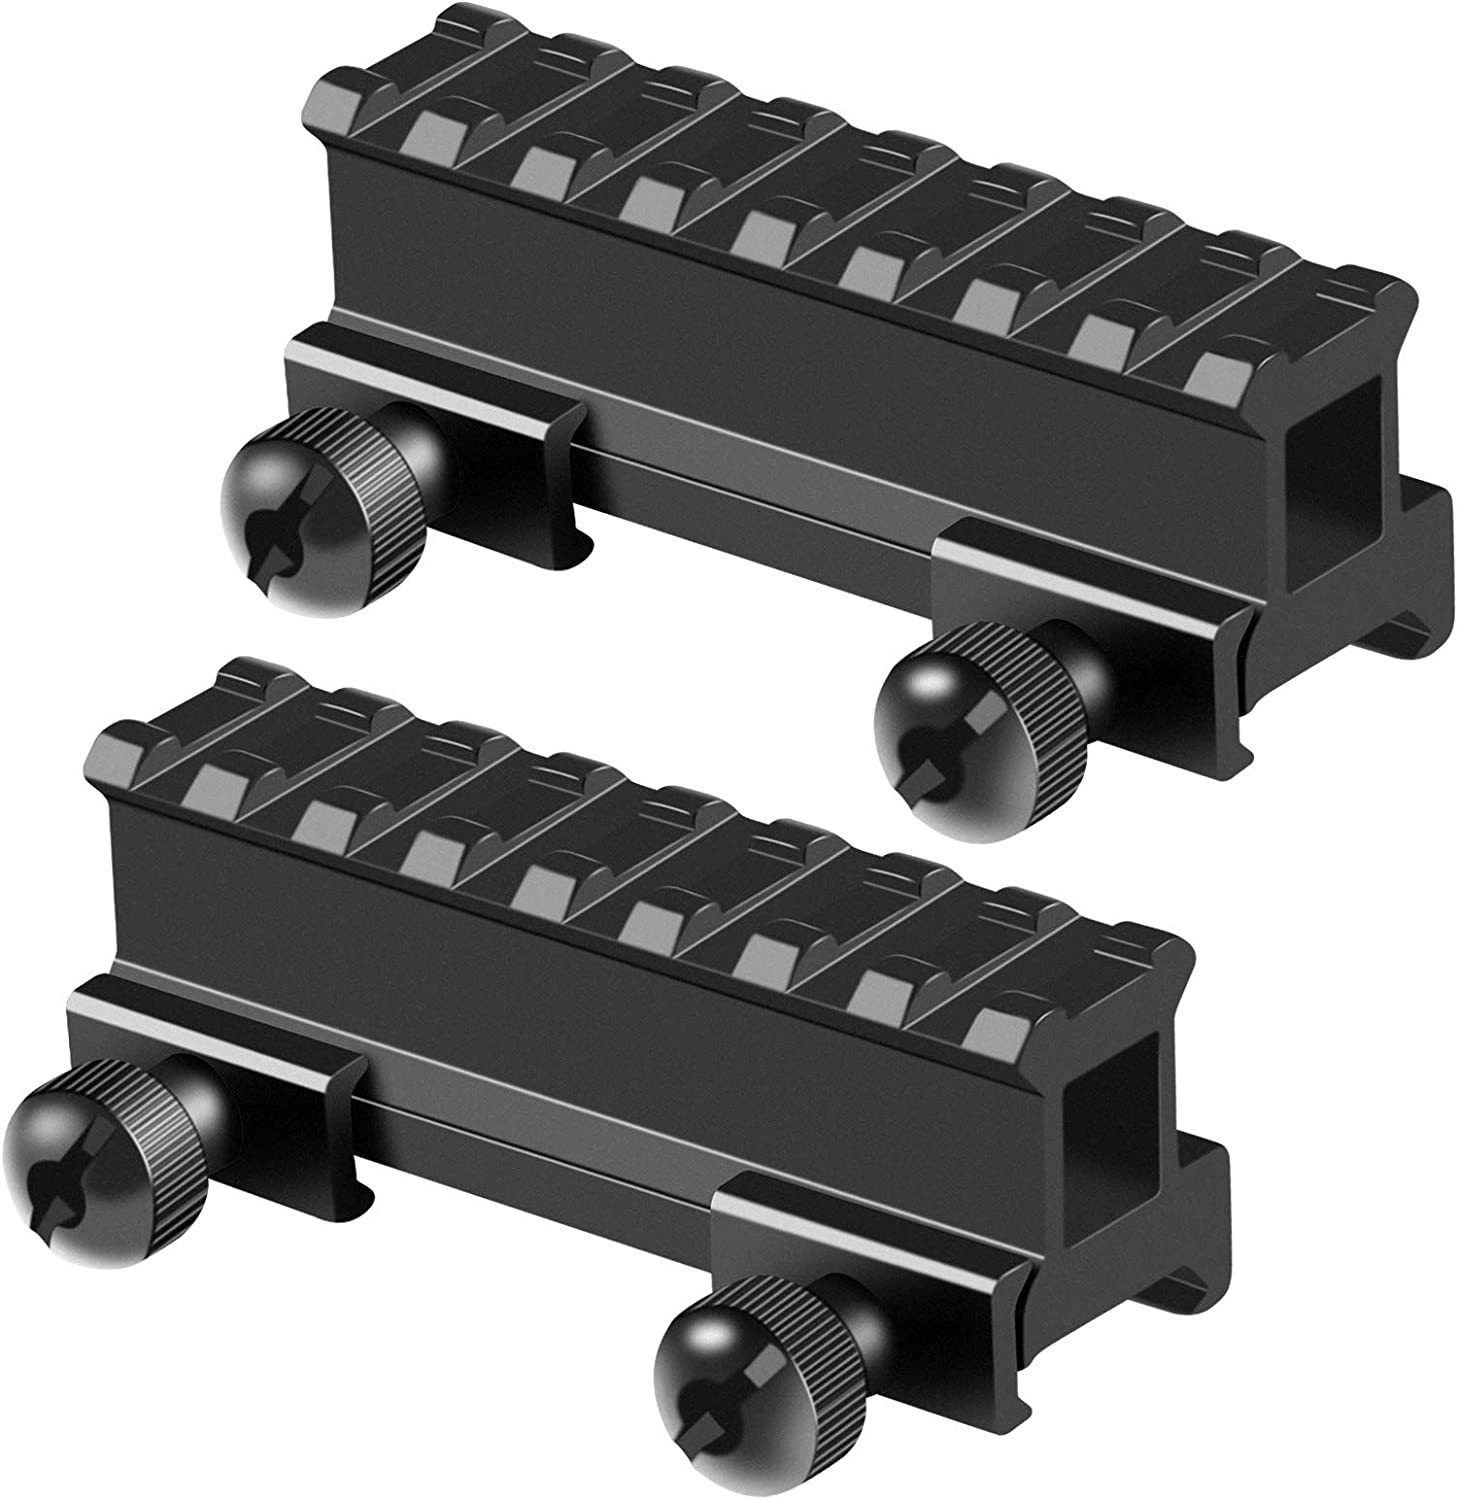 FENTUK Picatinny Riser Mounts 1 Inch Super sale period limited High Slots Picat Profile Free shipping anywhere in the nation 8